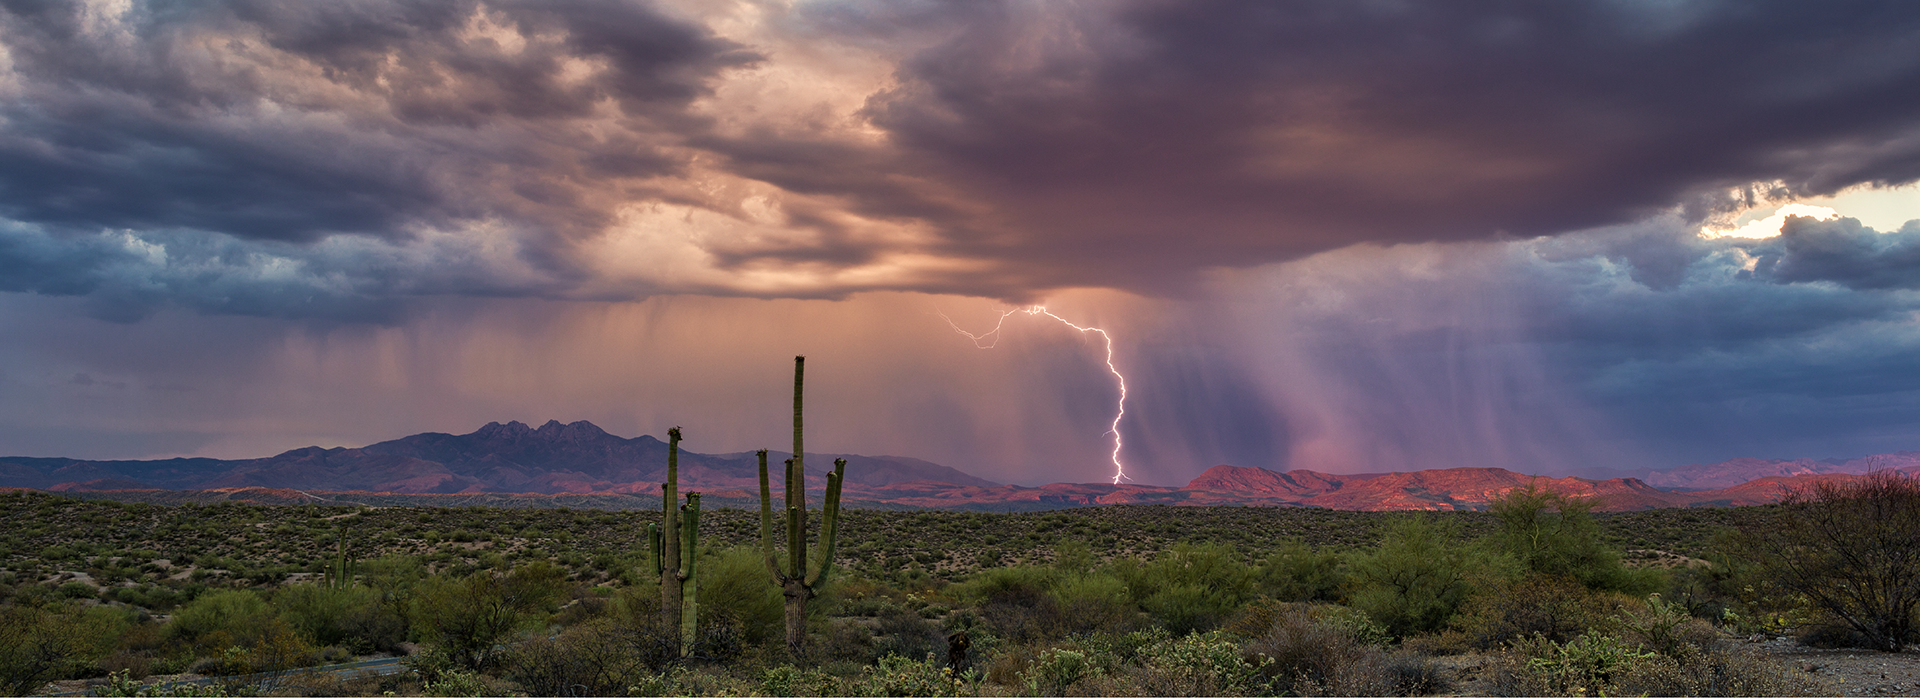 Monsoon 2021: So far, it's been wet, wild and a valuable part of Arizona's moisture mix